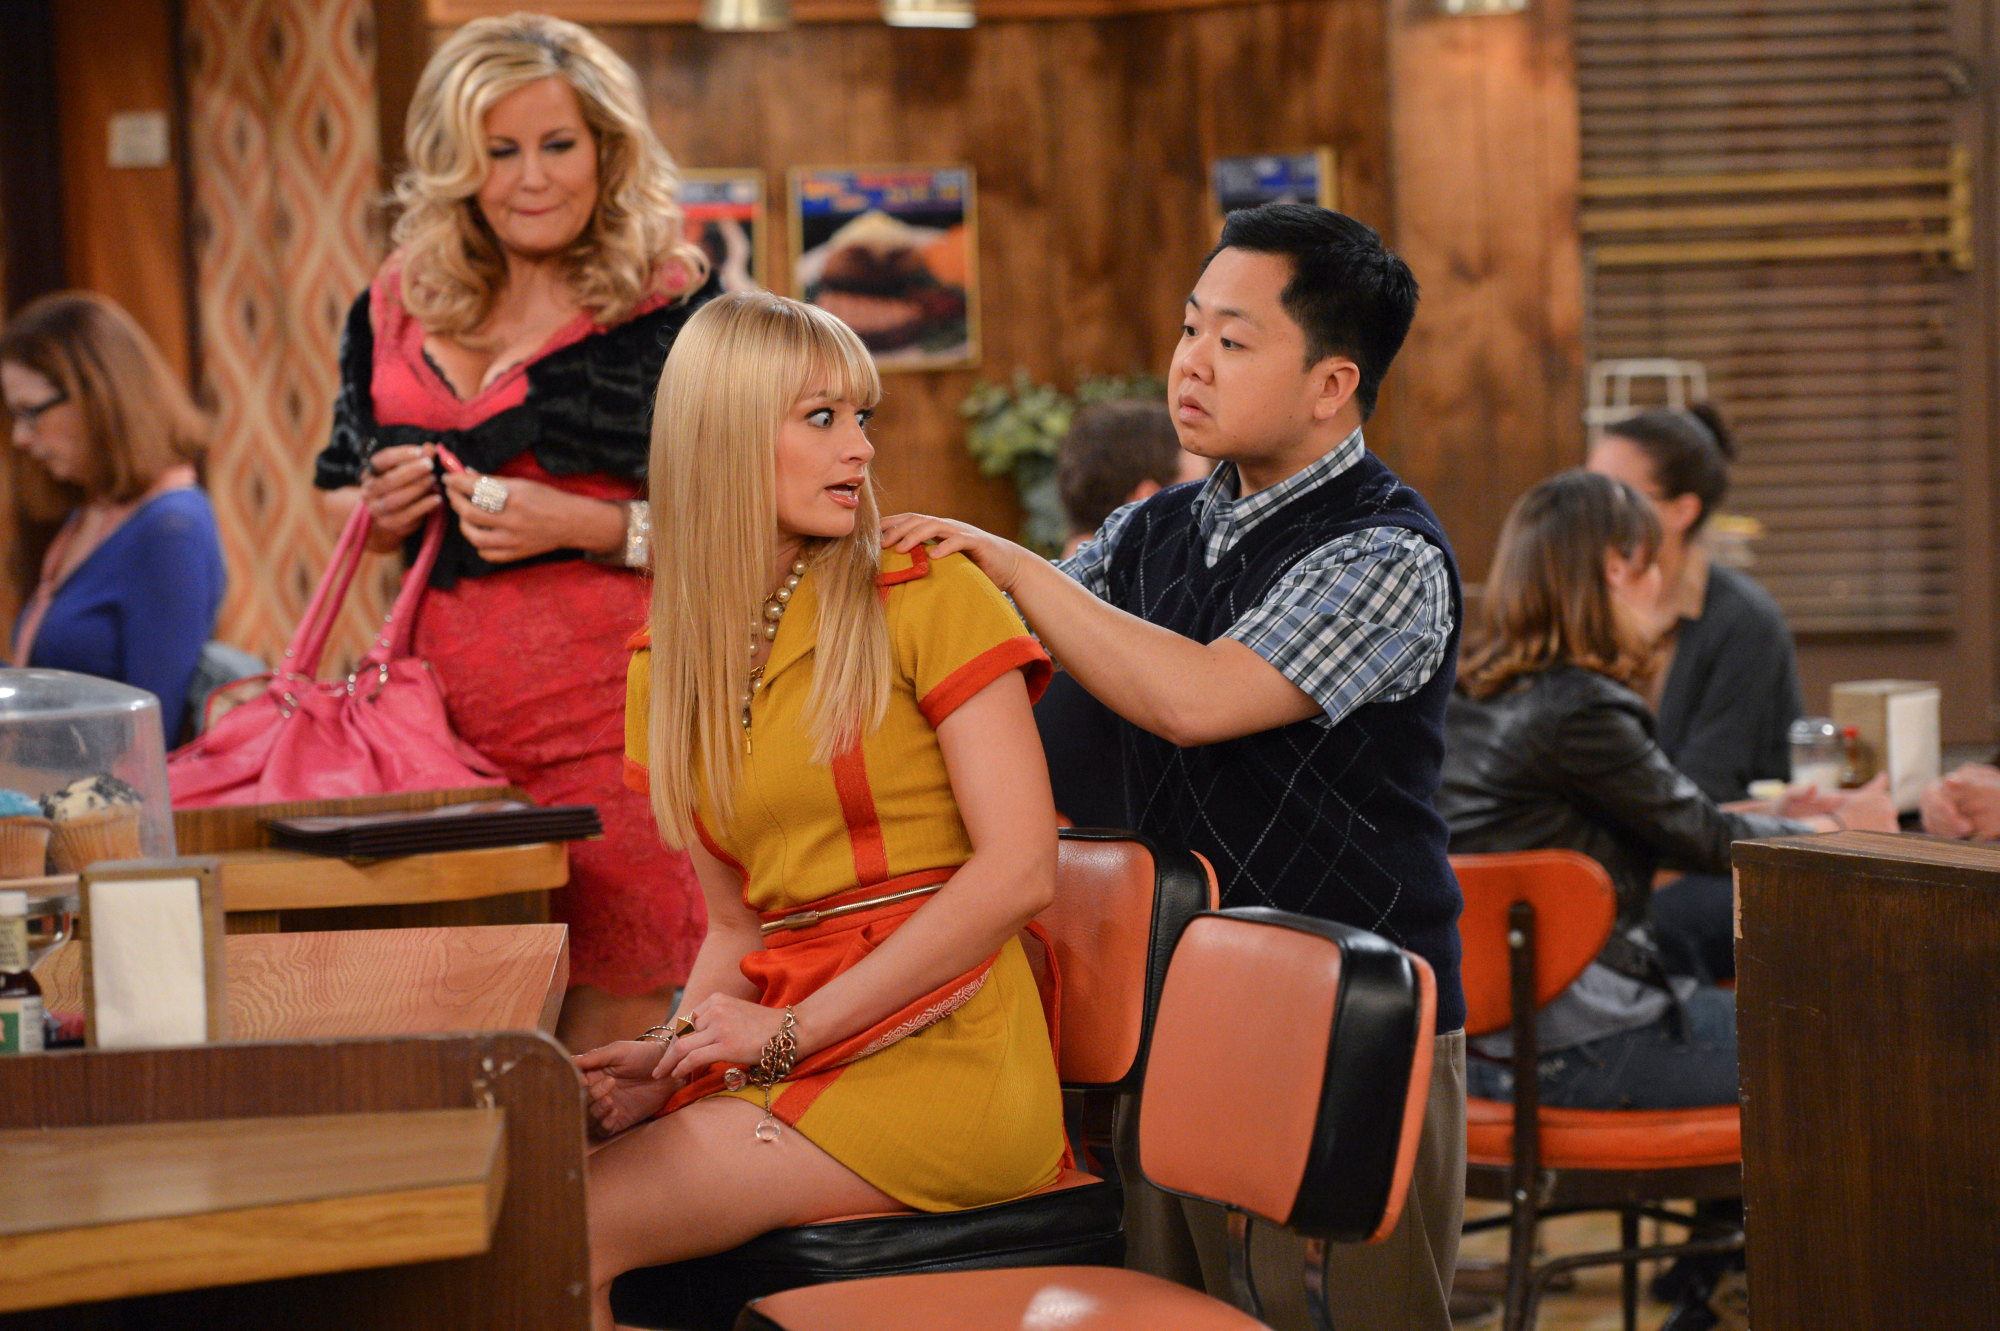 Han Lee in '2 Broke Girls'